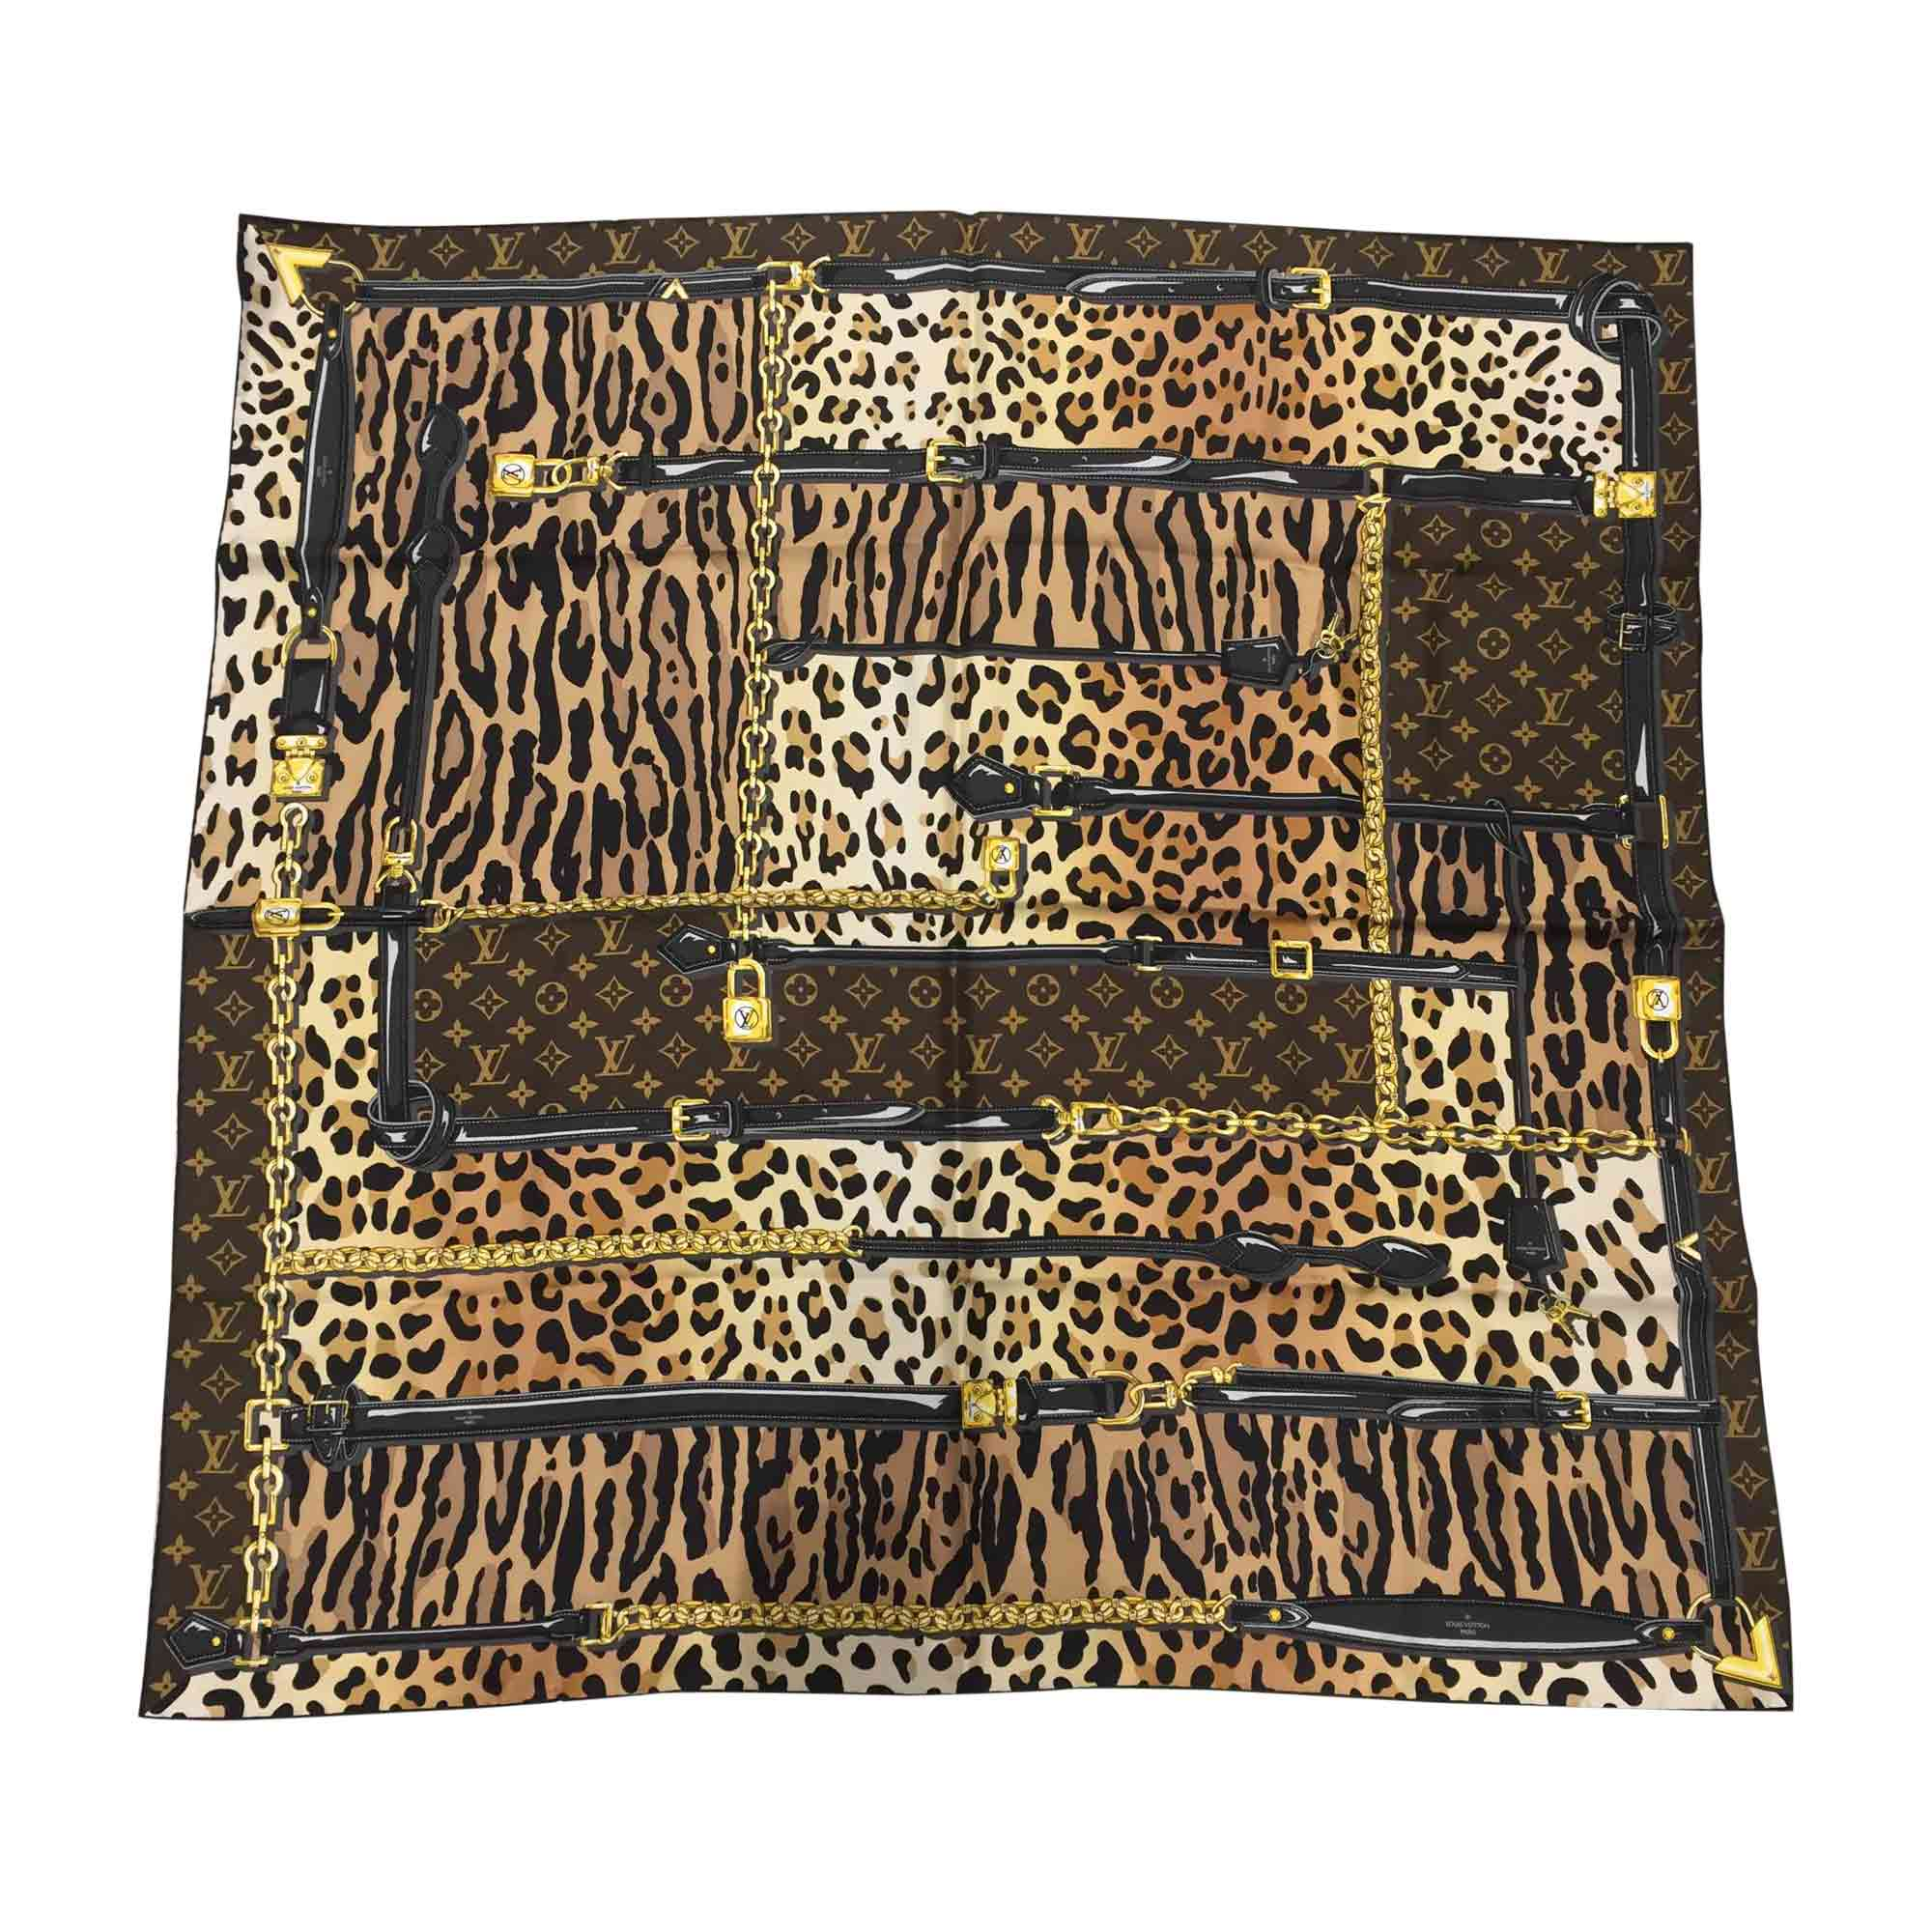 Foulard LOUIS VUITTON imprimés animaliers vendu par Closet2closet ... cd10a911132